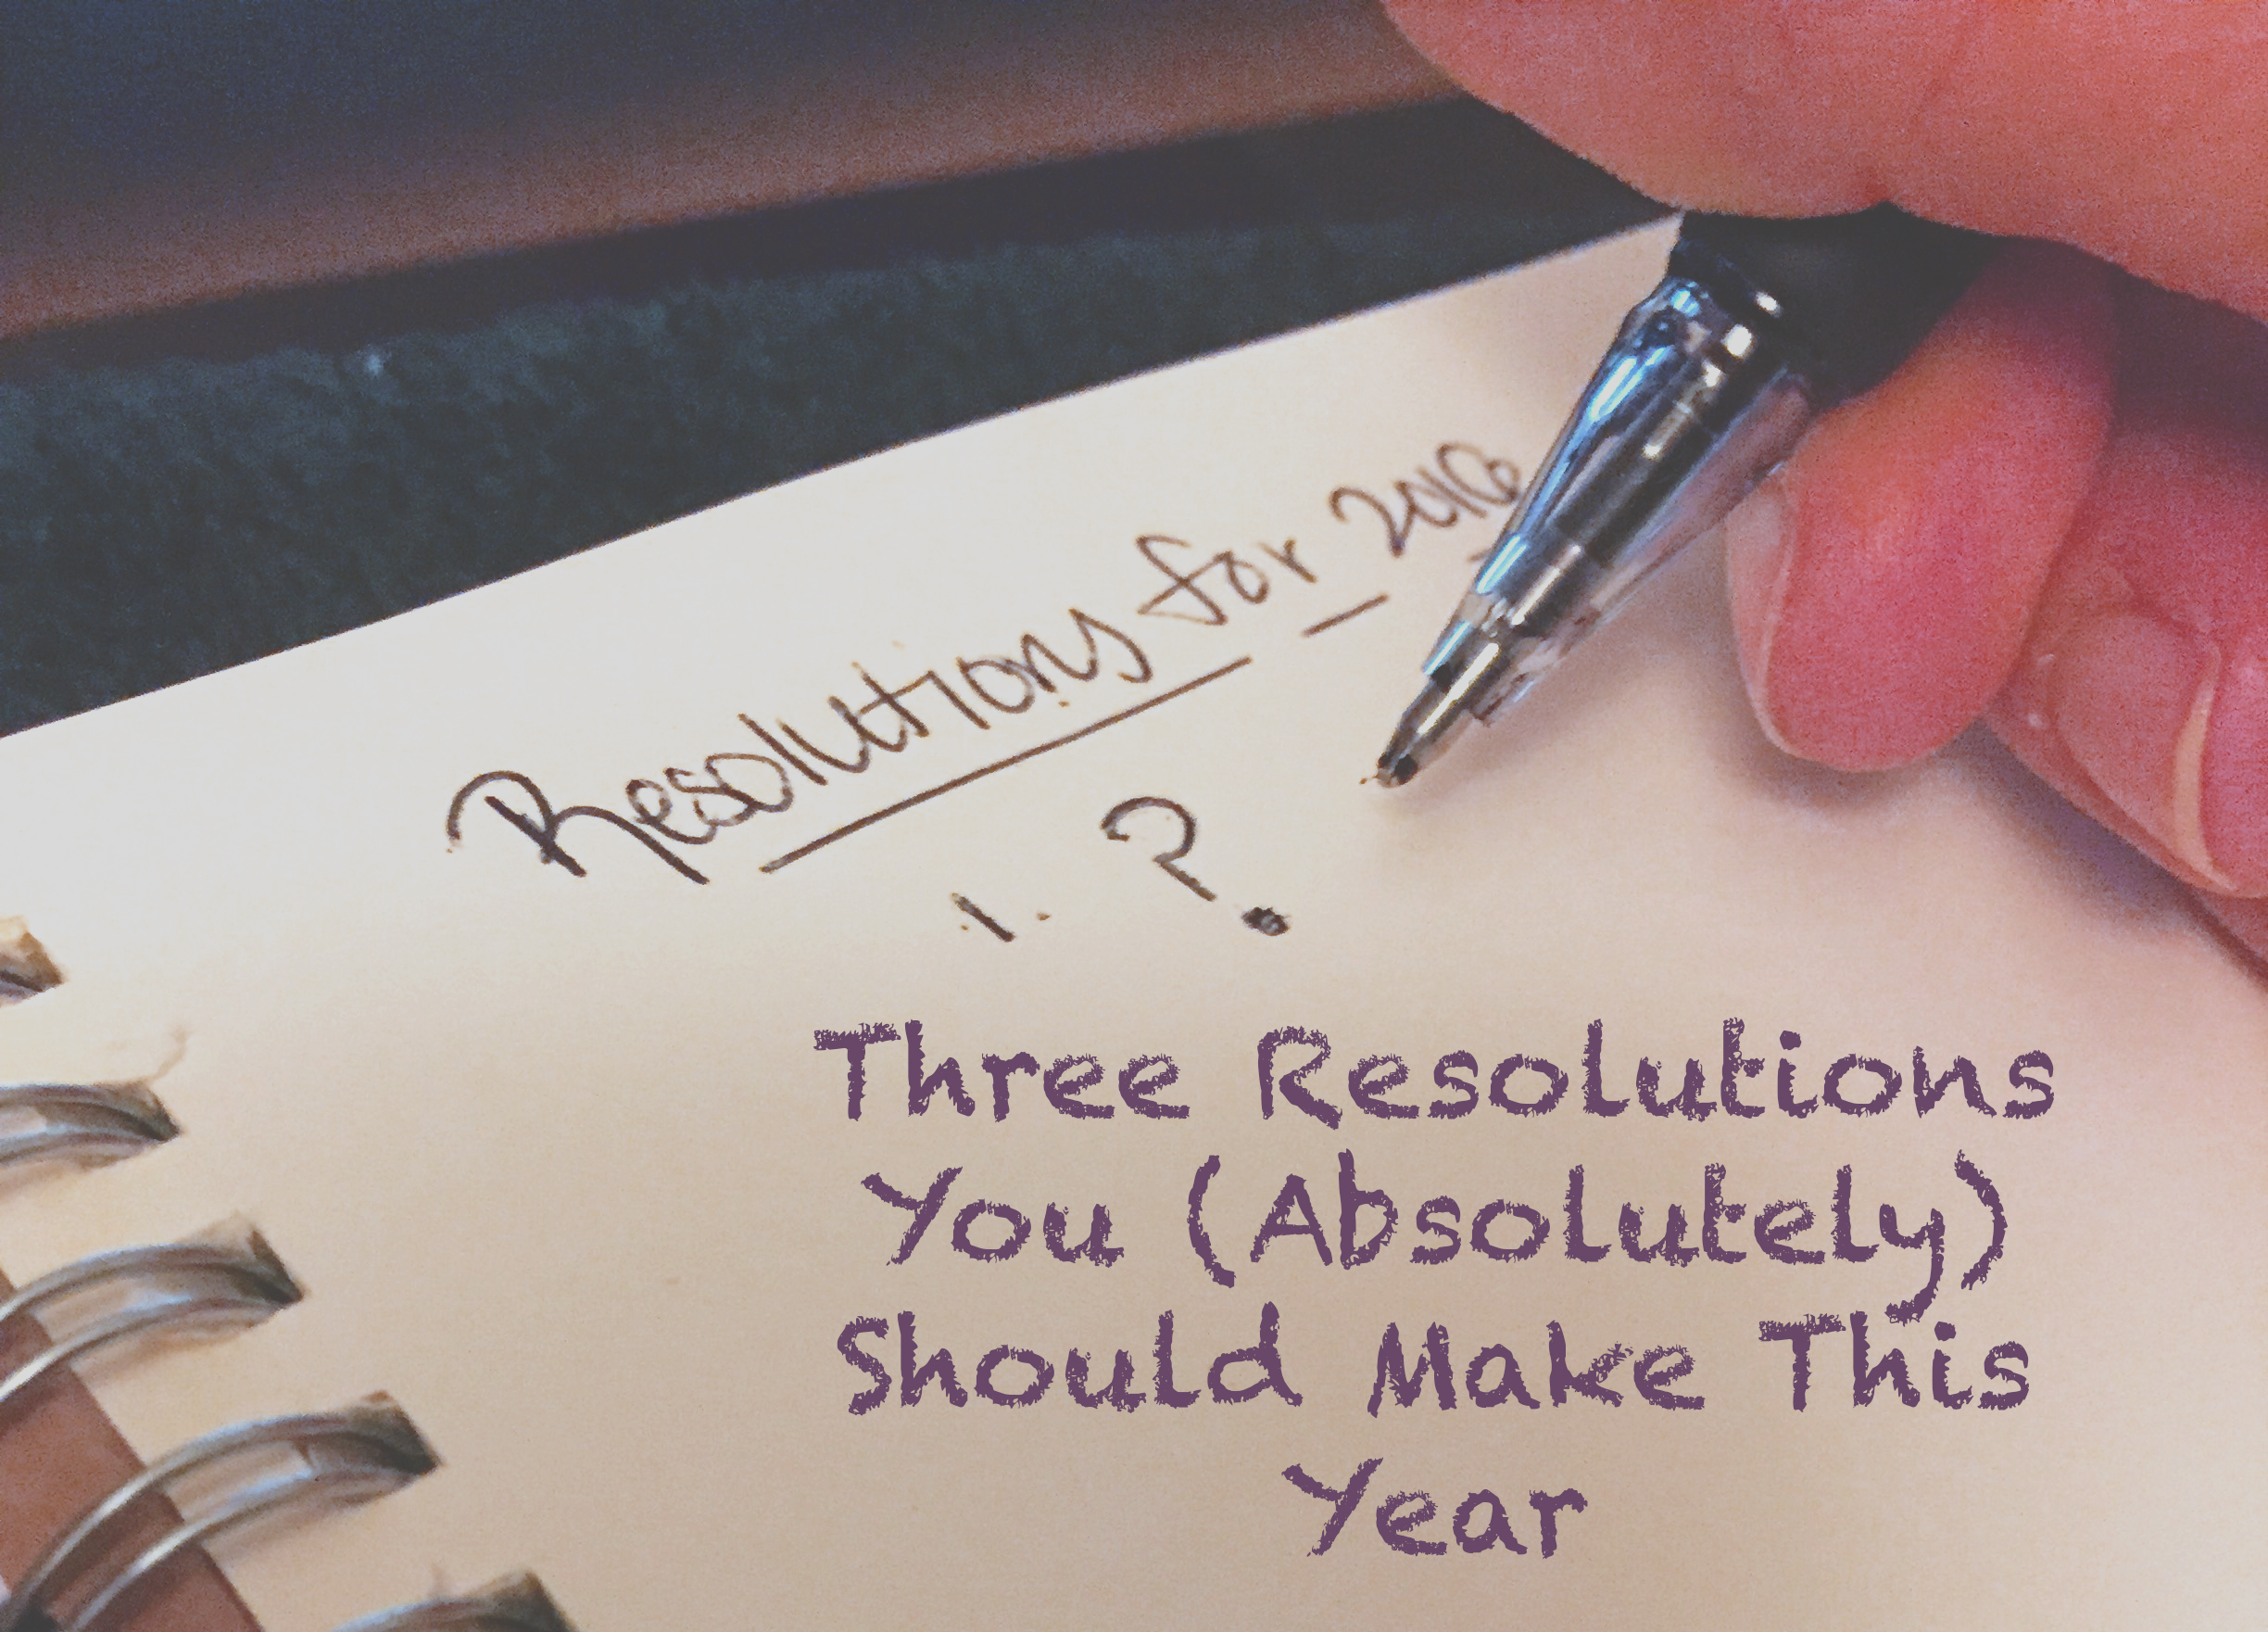 3 resolutions to make this year